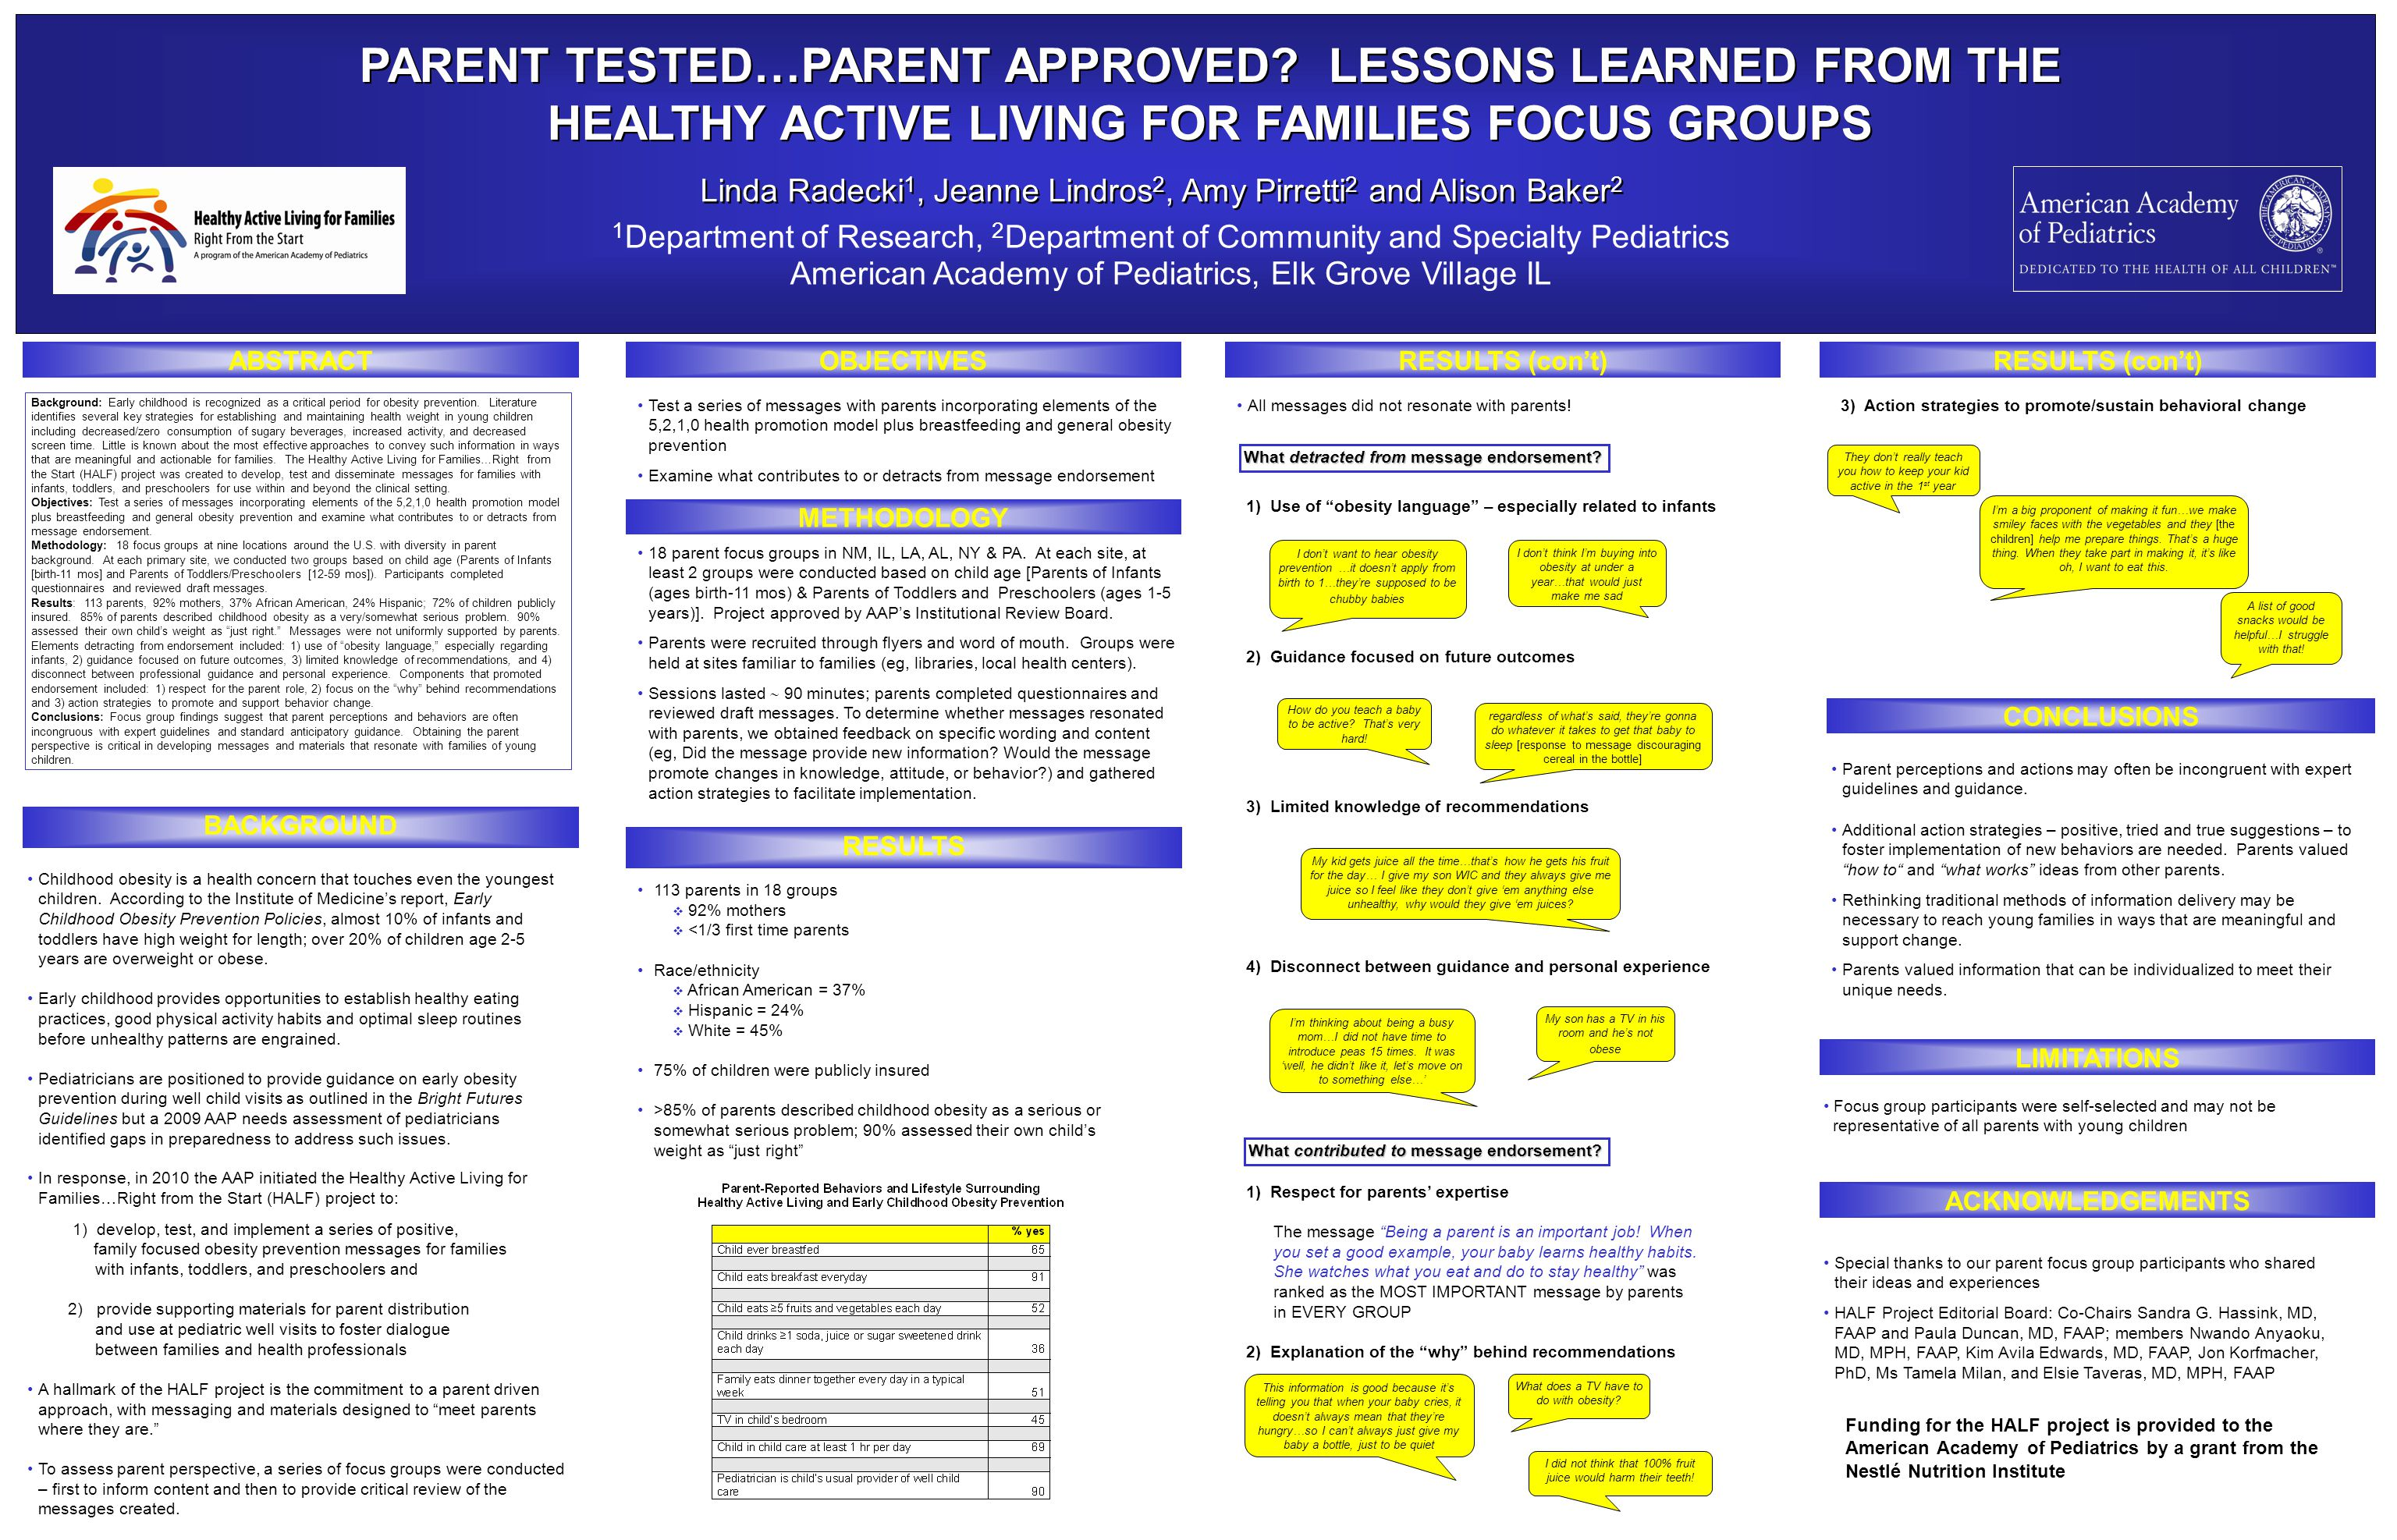 3) Action strategies to promote/sustain behavioral change PARENT TESTED…PARENT APPROVED.